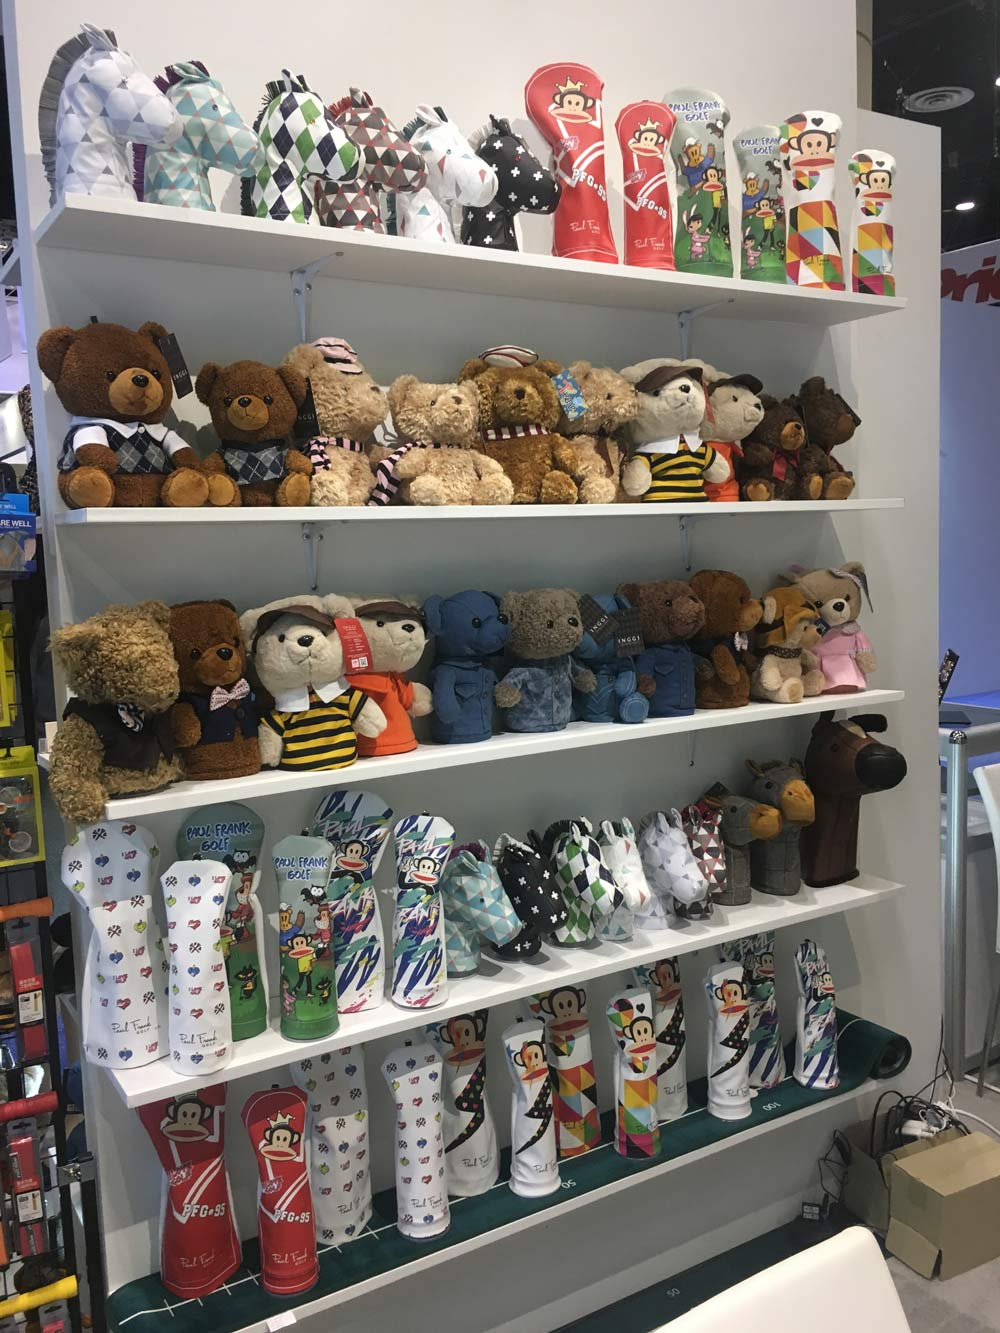 How cute are these teddy bear headcovers by Inggi? $30.